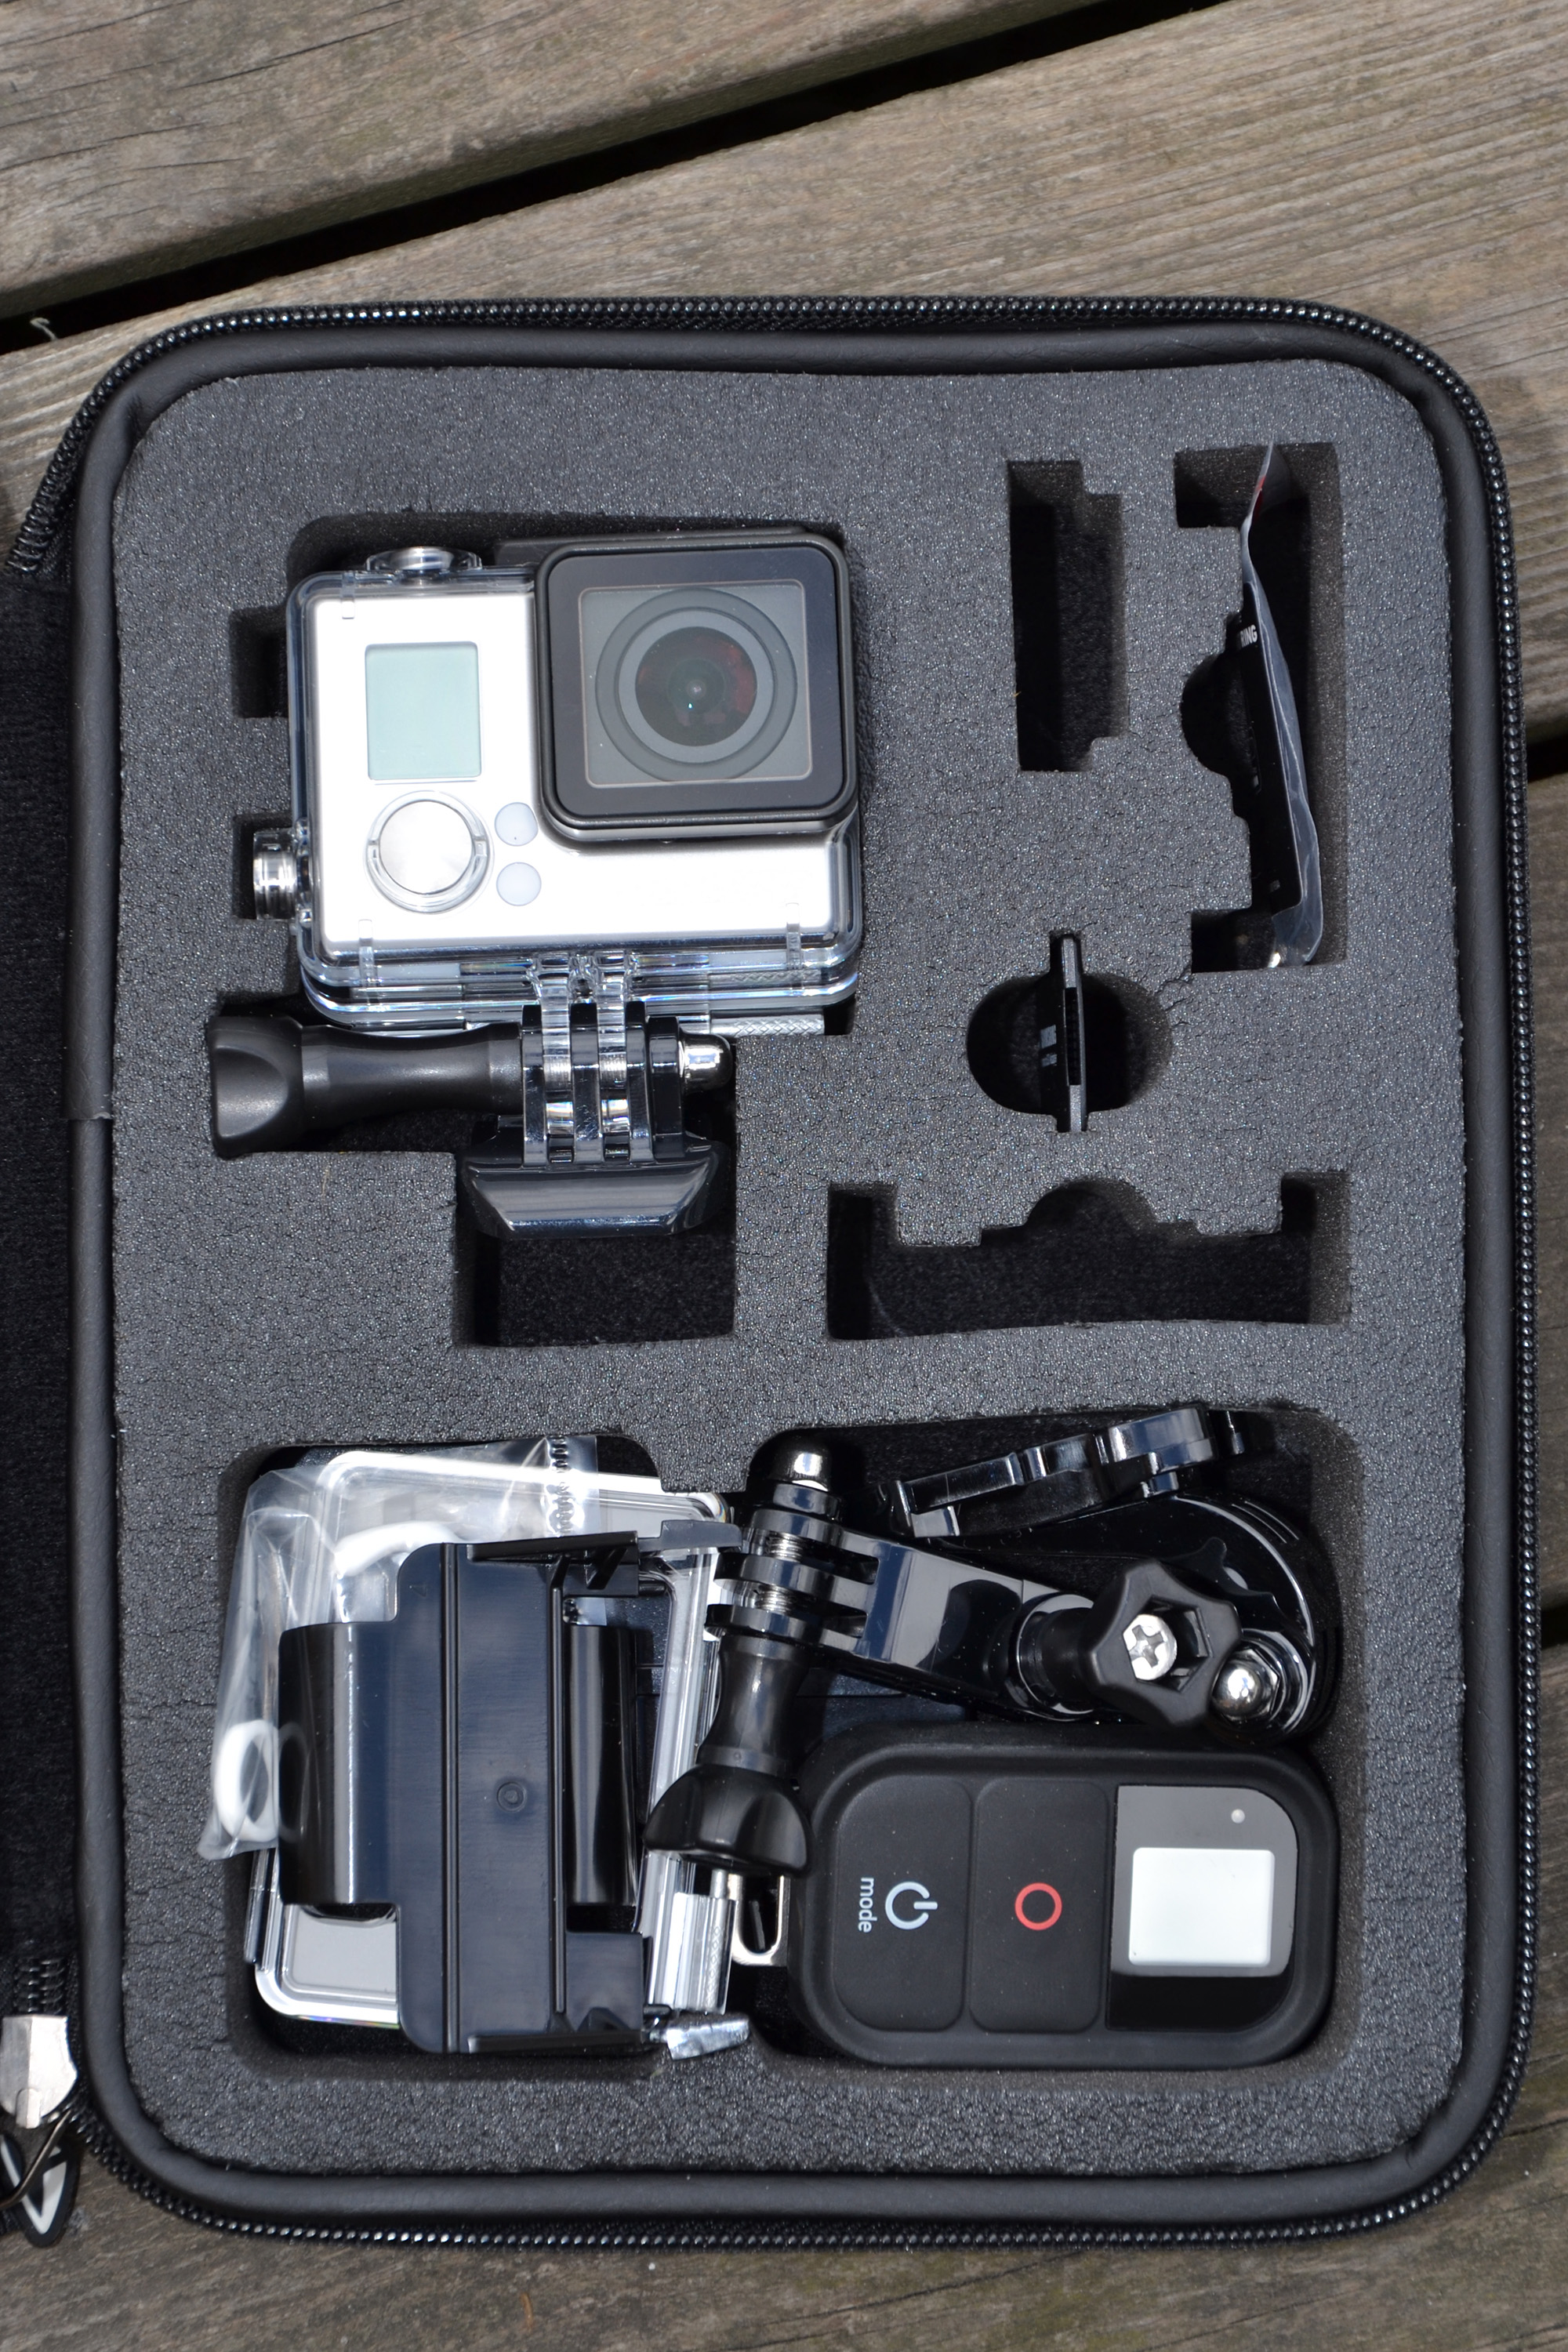 Action camera in a case photo